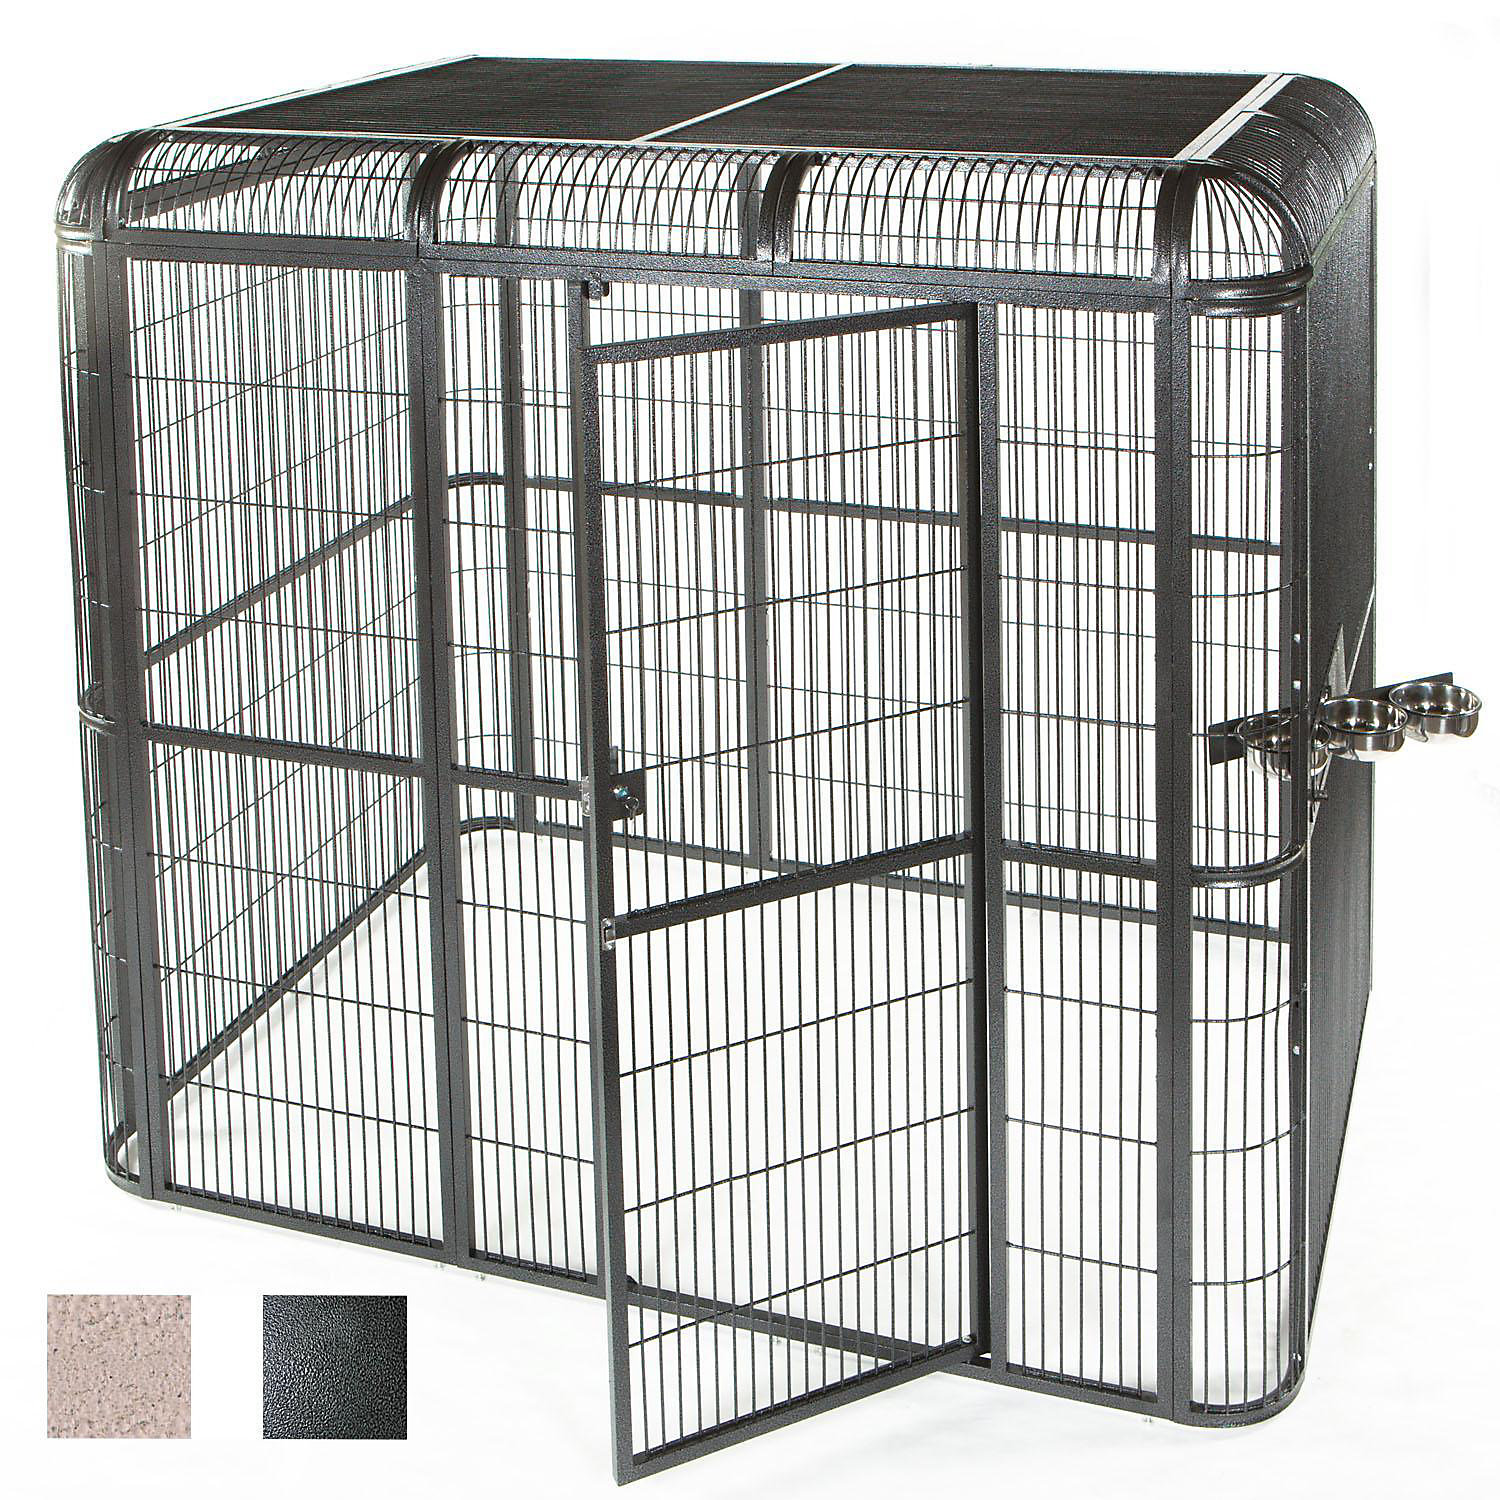 Ae Cage Company 85 X 61 Walk In Aviary In Black Medium